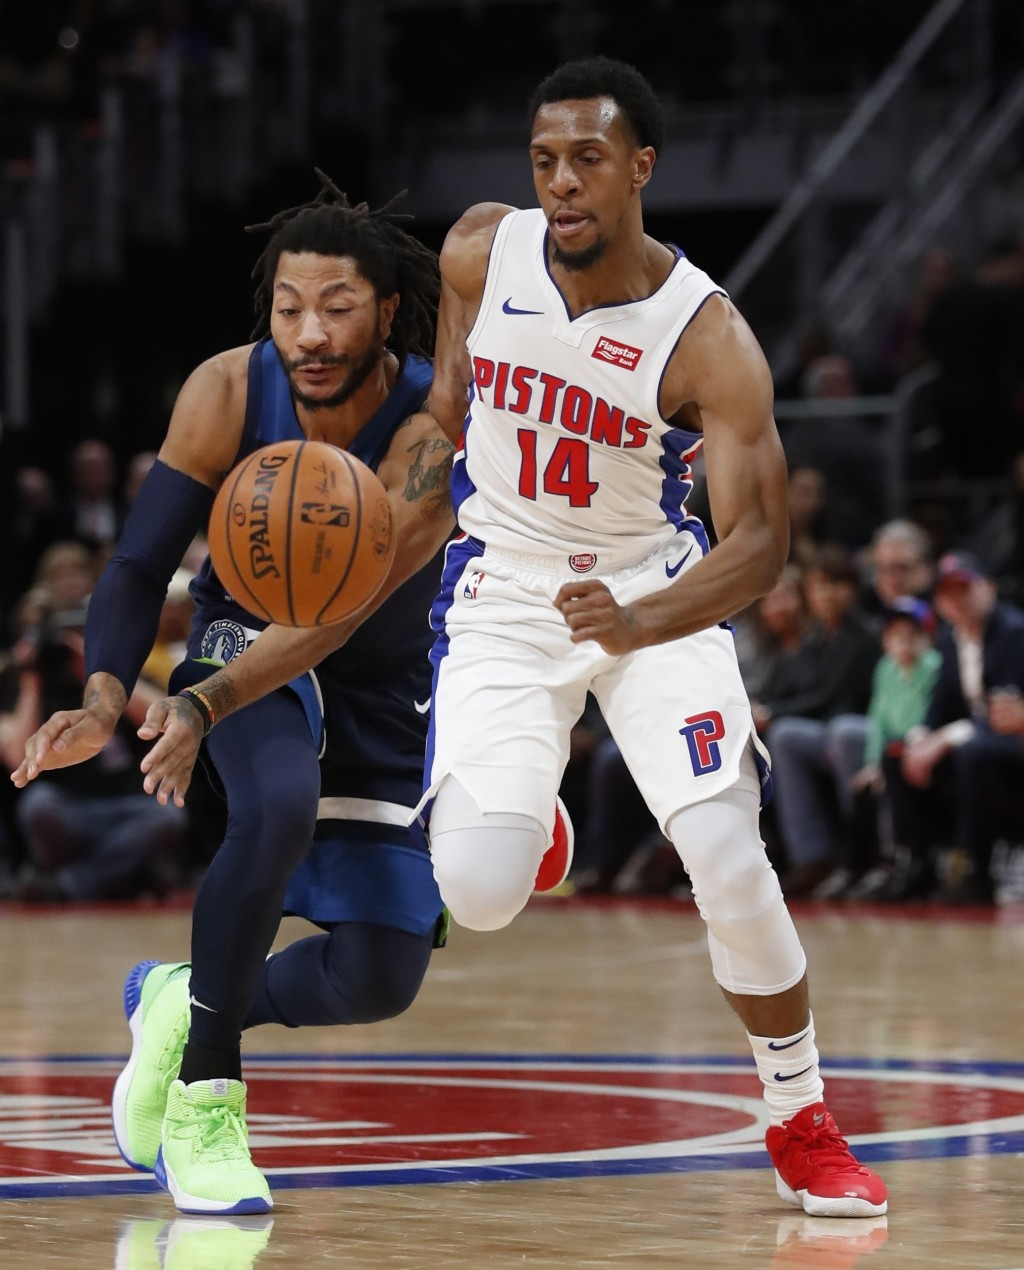 Minnesota Timberwolves guard Derrick Rose and Detroit Pistons guard Ish Smith (14) chase the loose ball during the first half of an NBA basketball gam